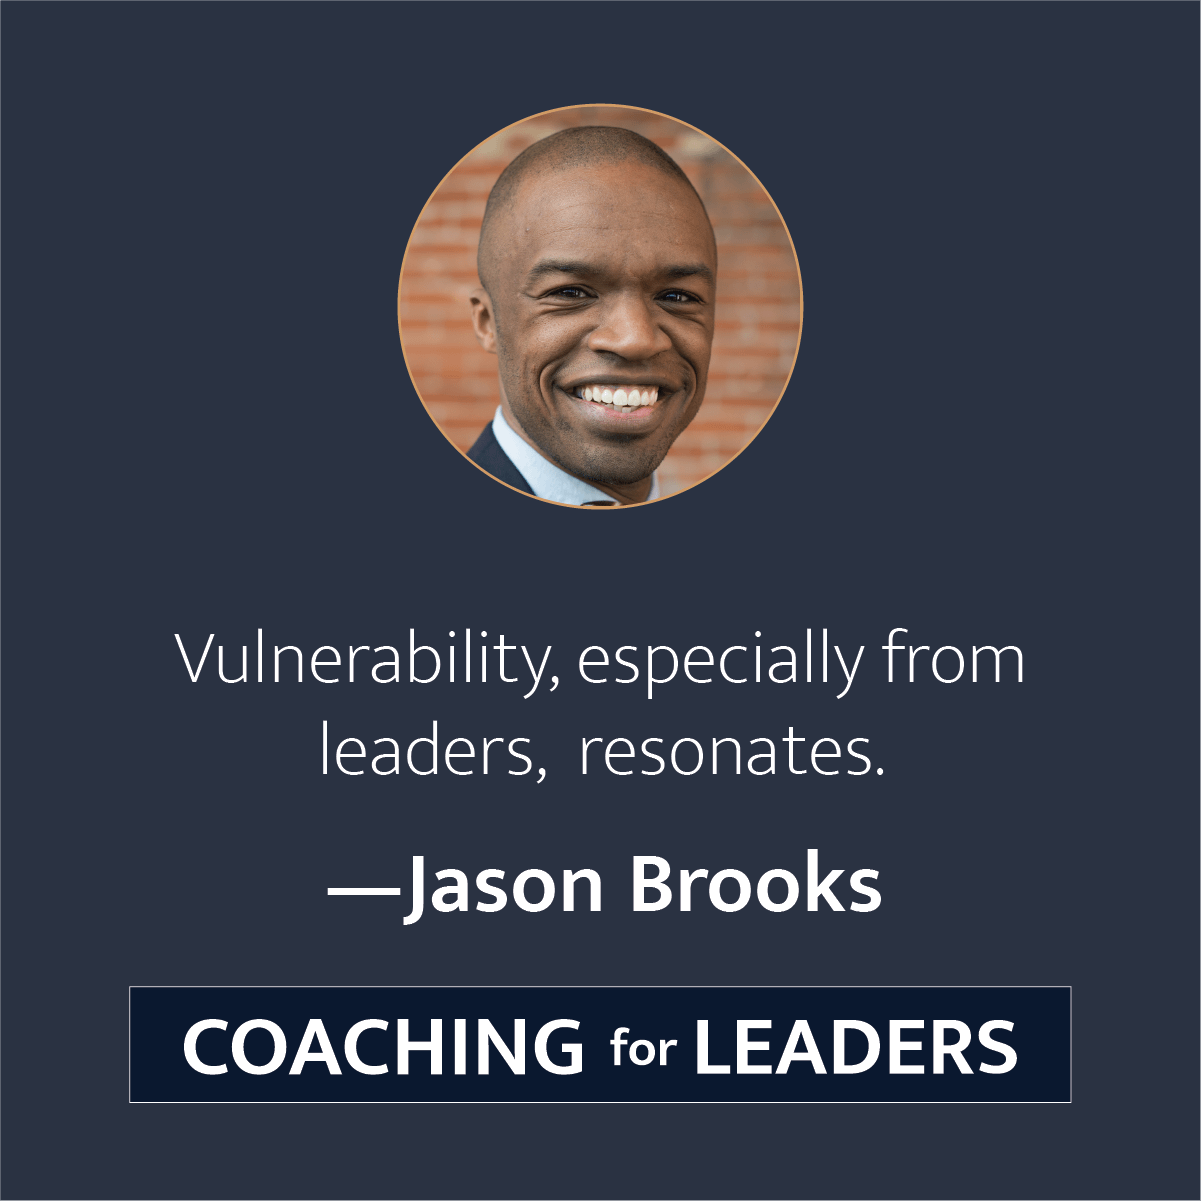 Vulnerability, especially in leaders, resonates.